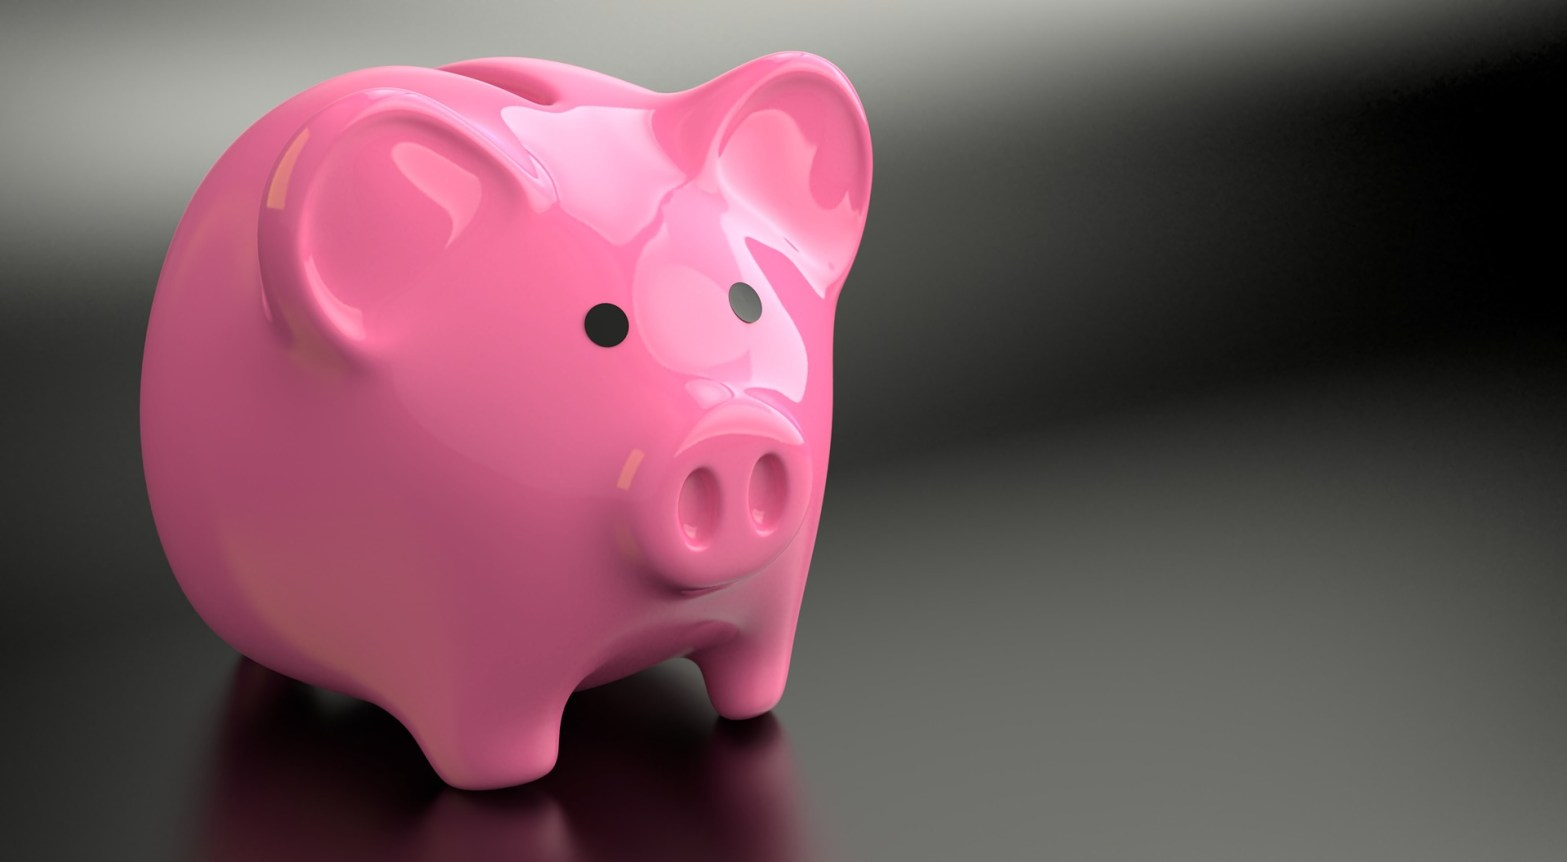 image of a pink piggy bank with a grayish black gradient background.